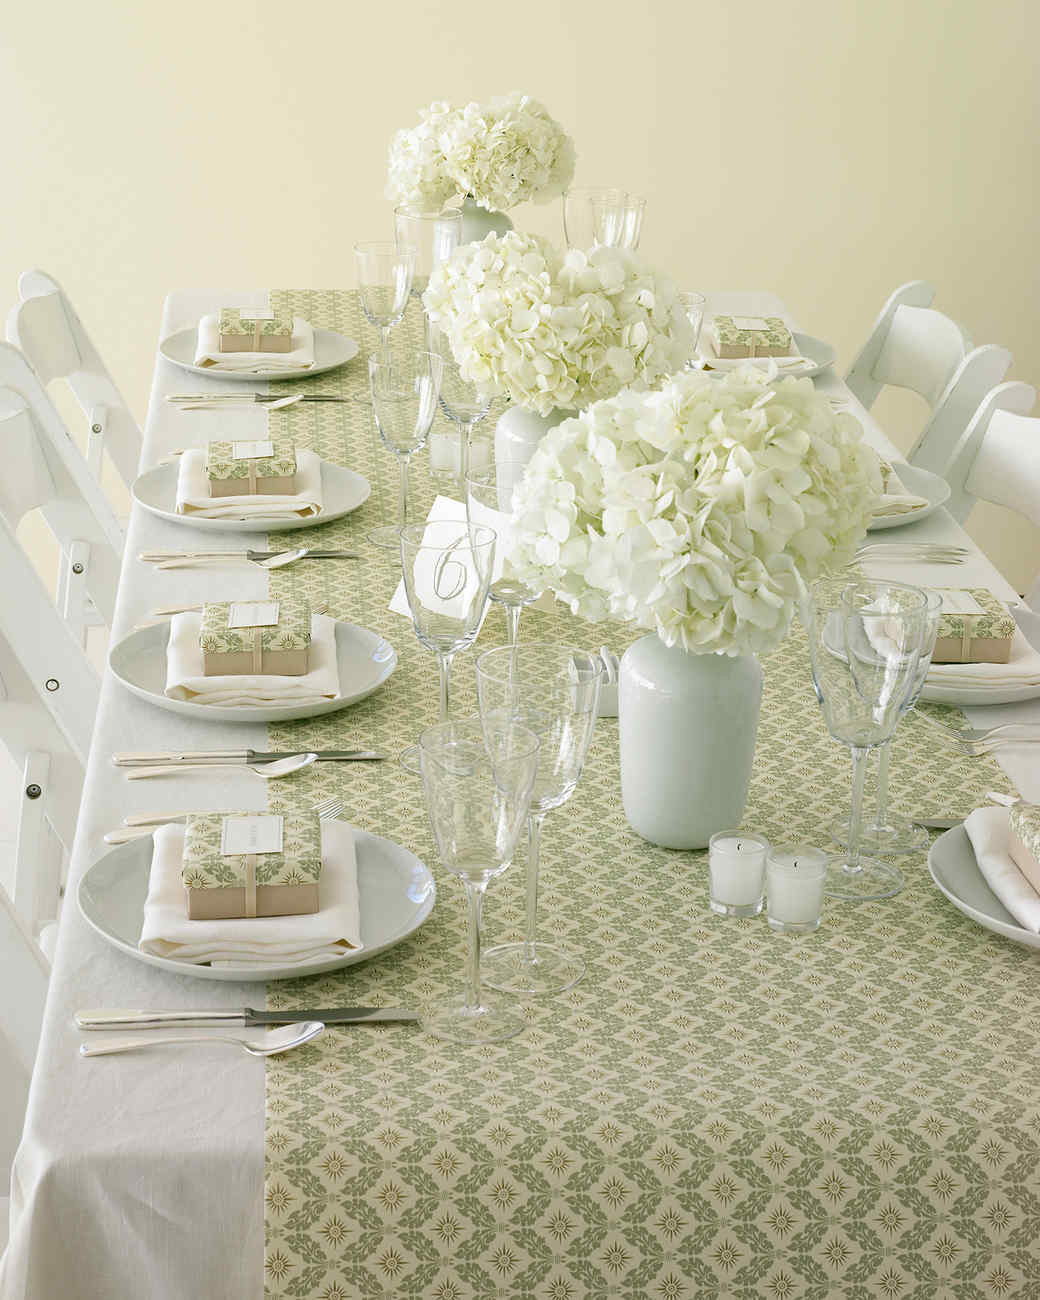 Wrapping-Paper Table Runner